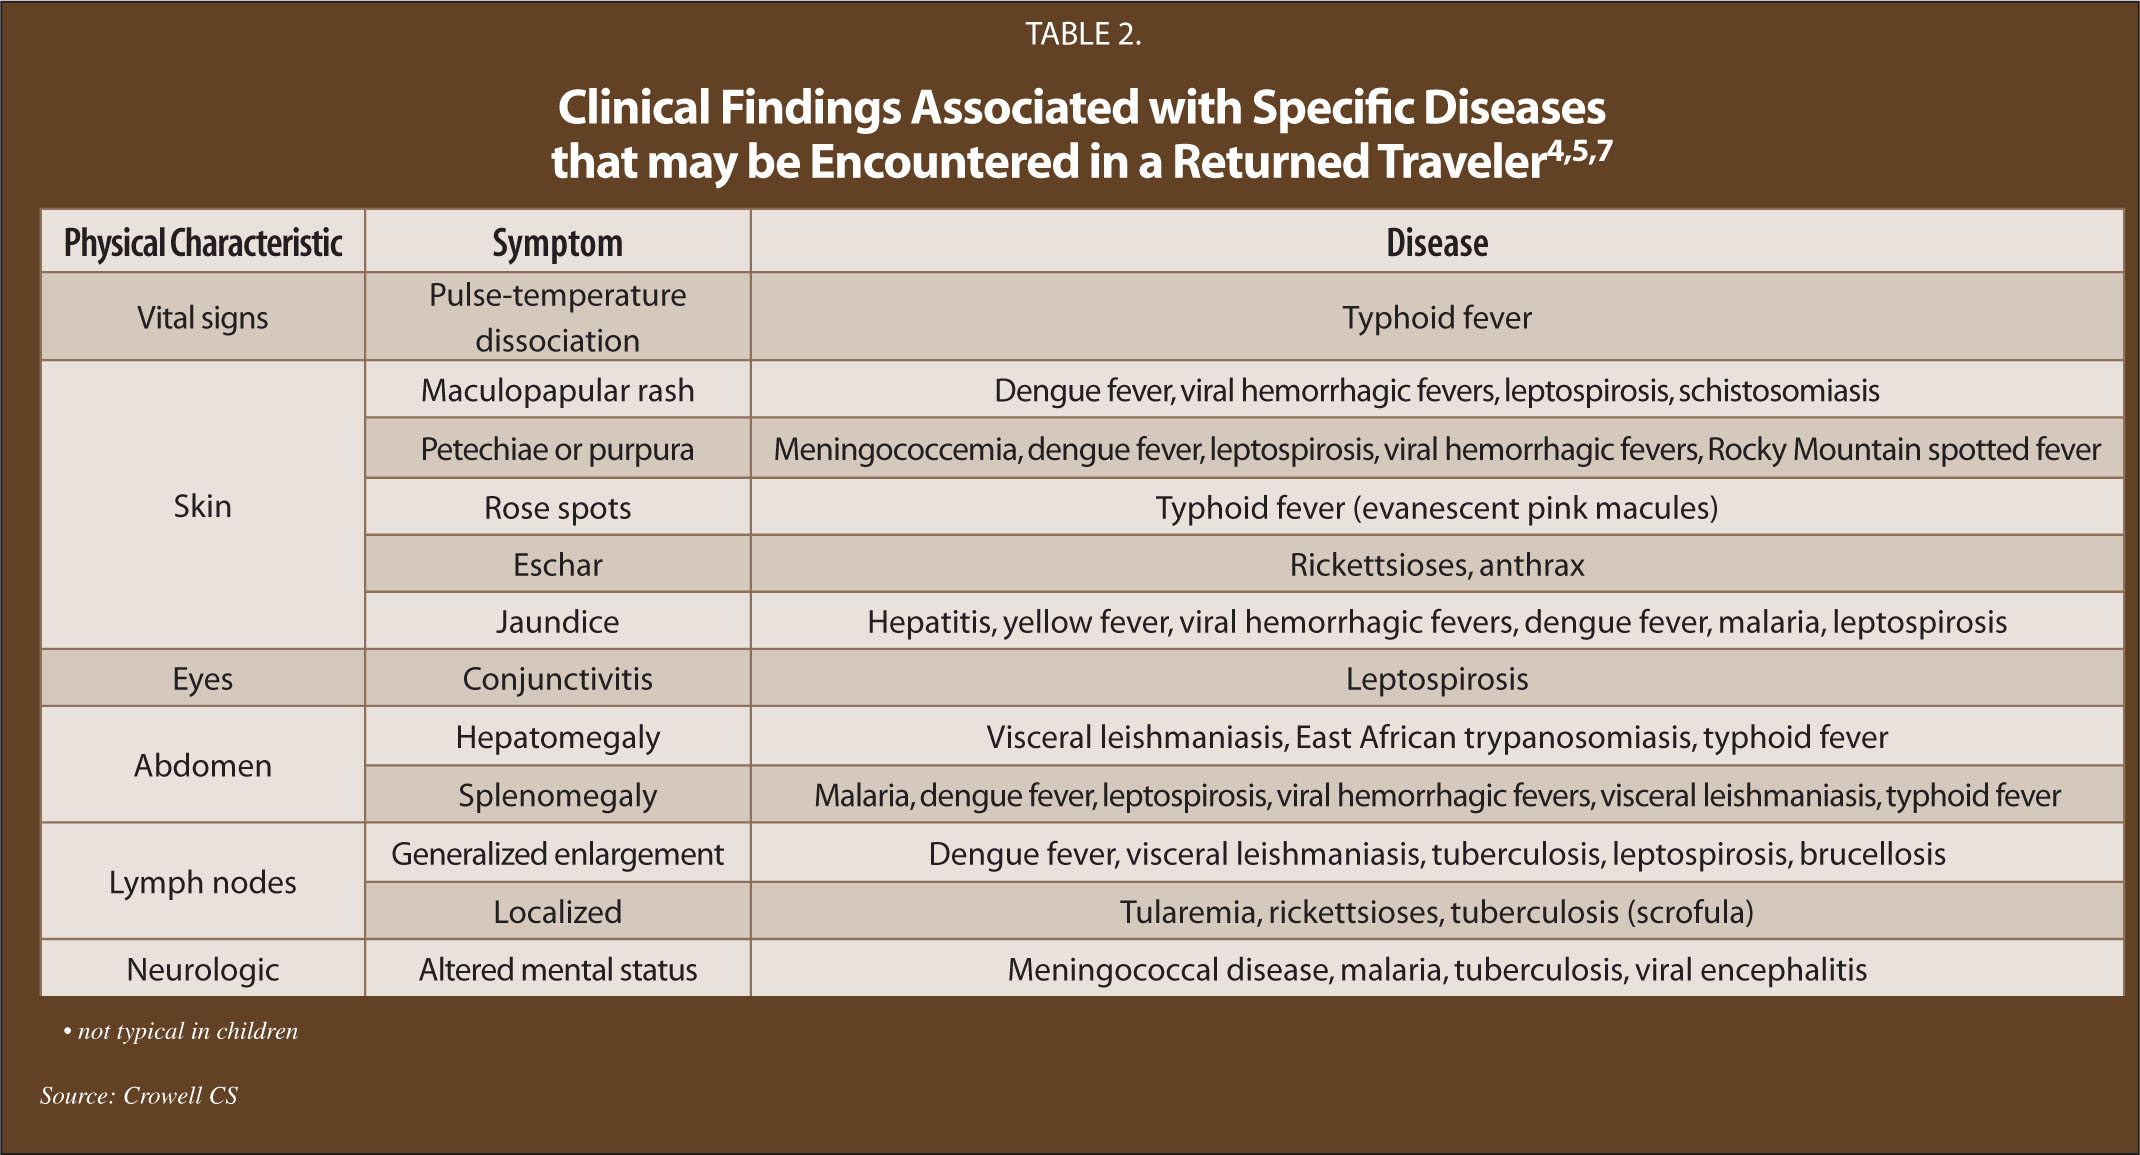 Clinical Findings Associated with Specific Diseases that May Be Encountered in a Returned Traveler4,5,7